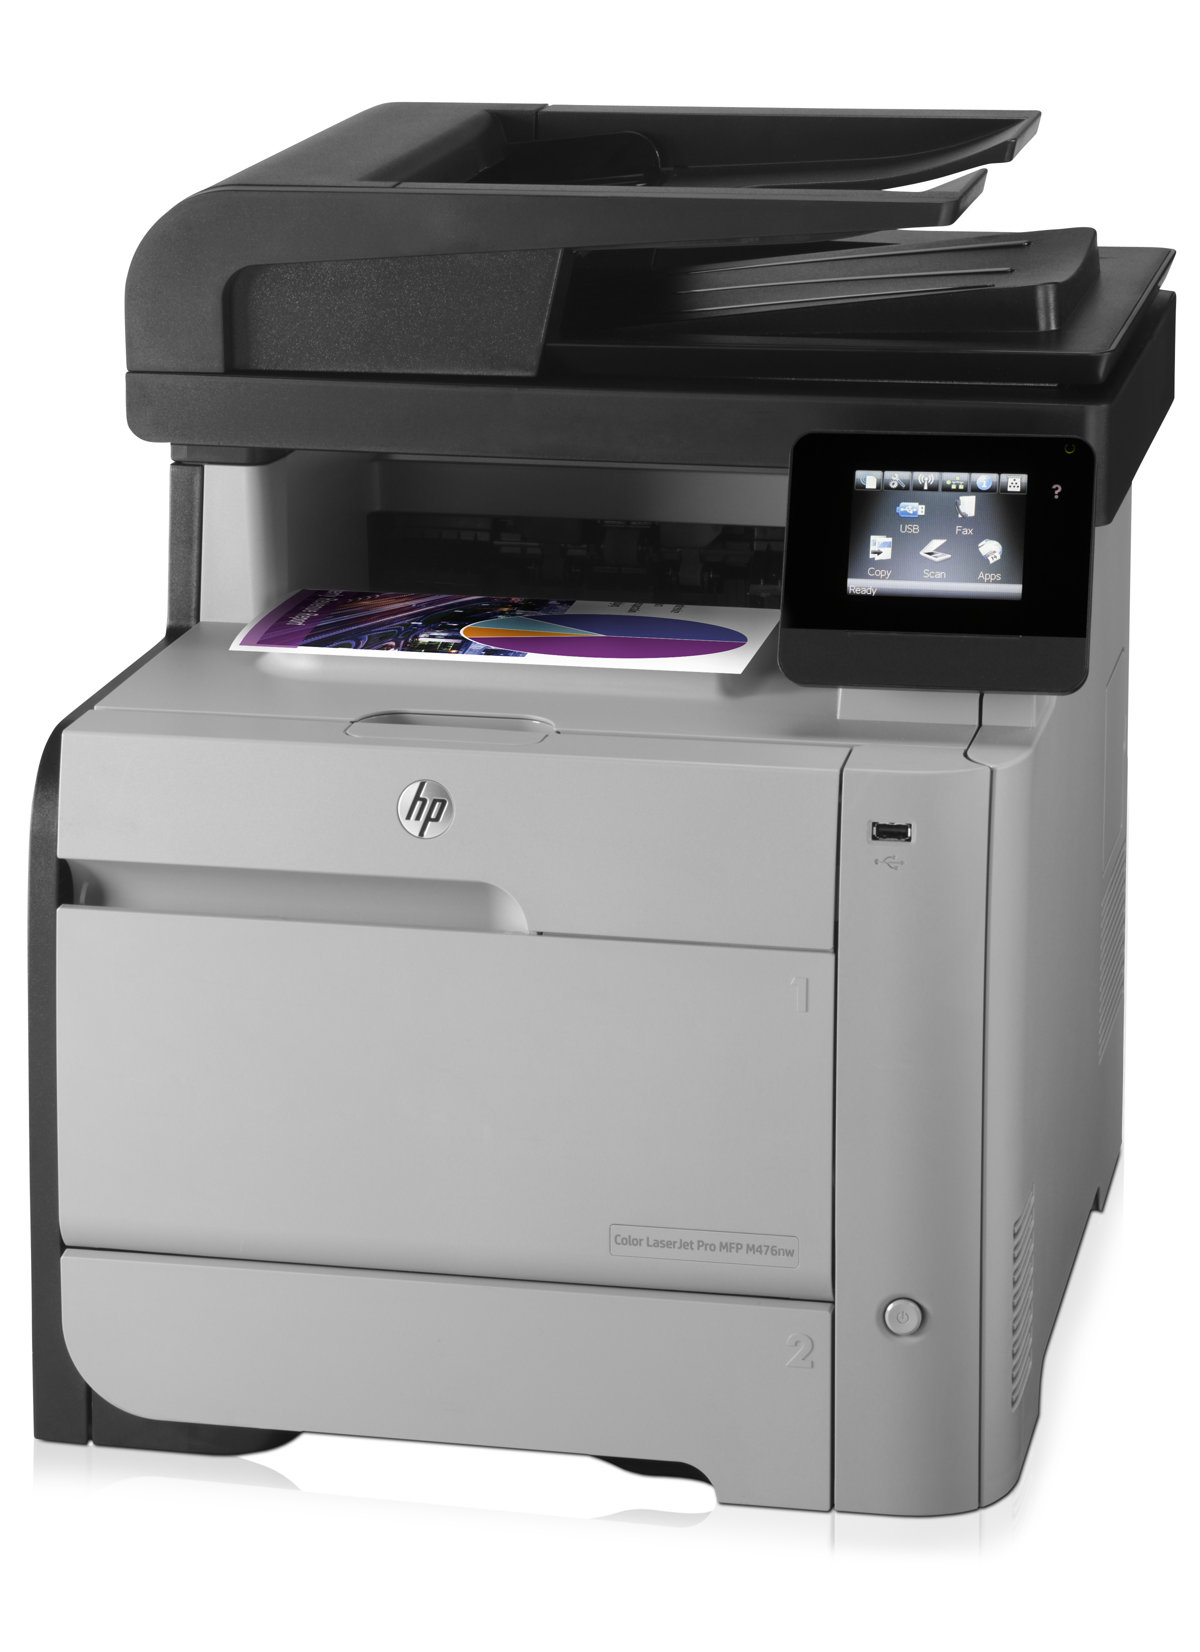 Color printing office depot - Hp Laserjet Pro M476nw Wireless Color Multifunction All In One Printer Copier Scanner Fax By Office Depot Officemax